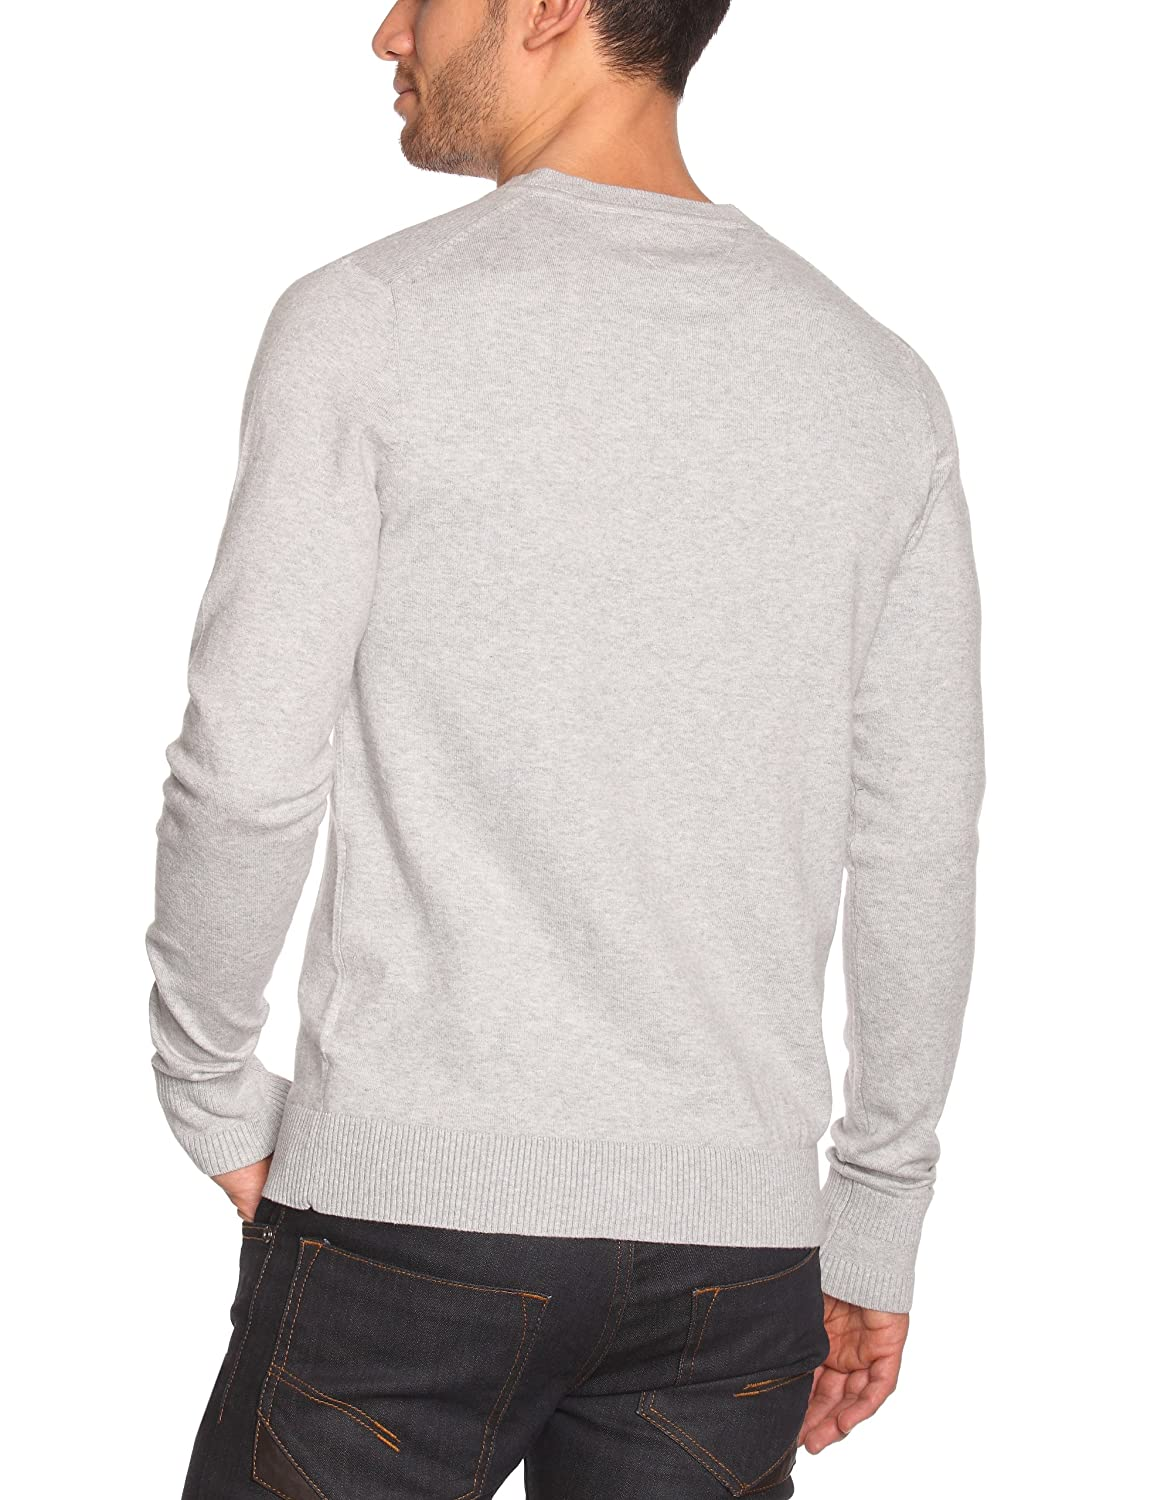 Tommy Gris Small Homme Pull Jeans taille Longues Manches Uni S light Fr Hilfiger Col Grey V Heather Denim Fabricant Timber q6Uqf8z4